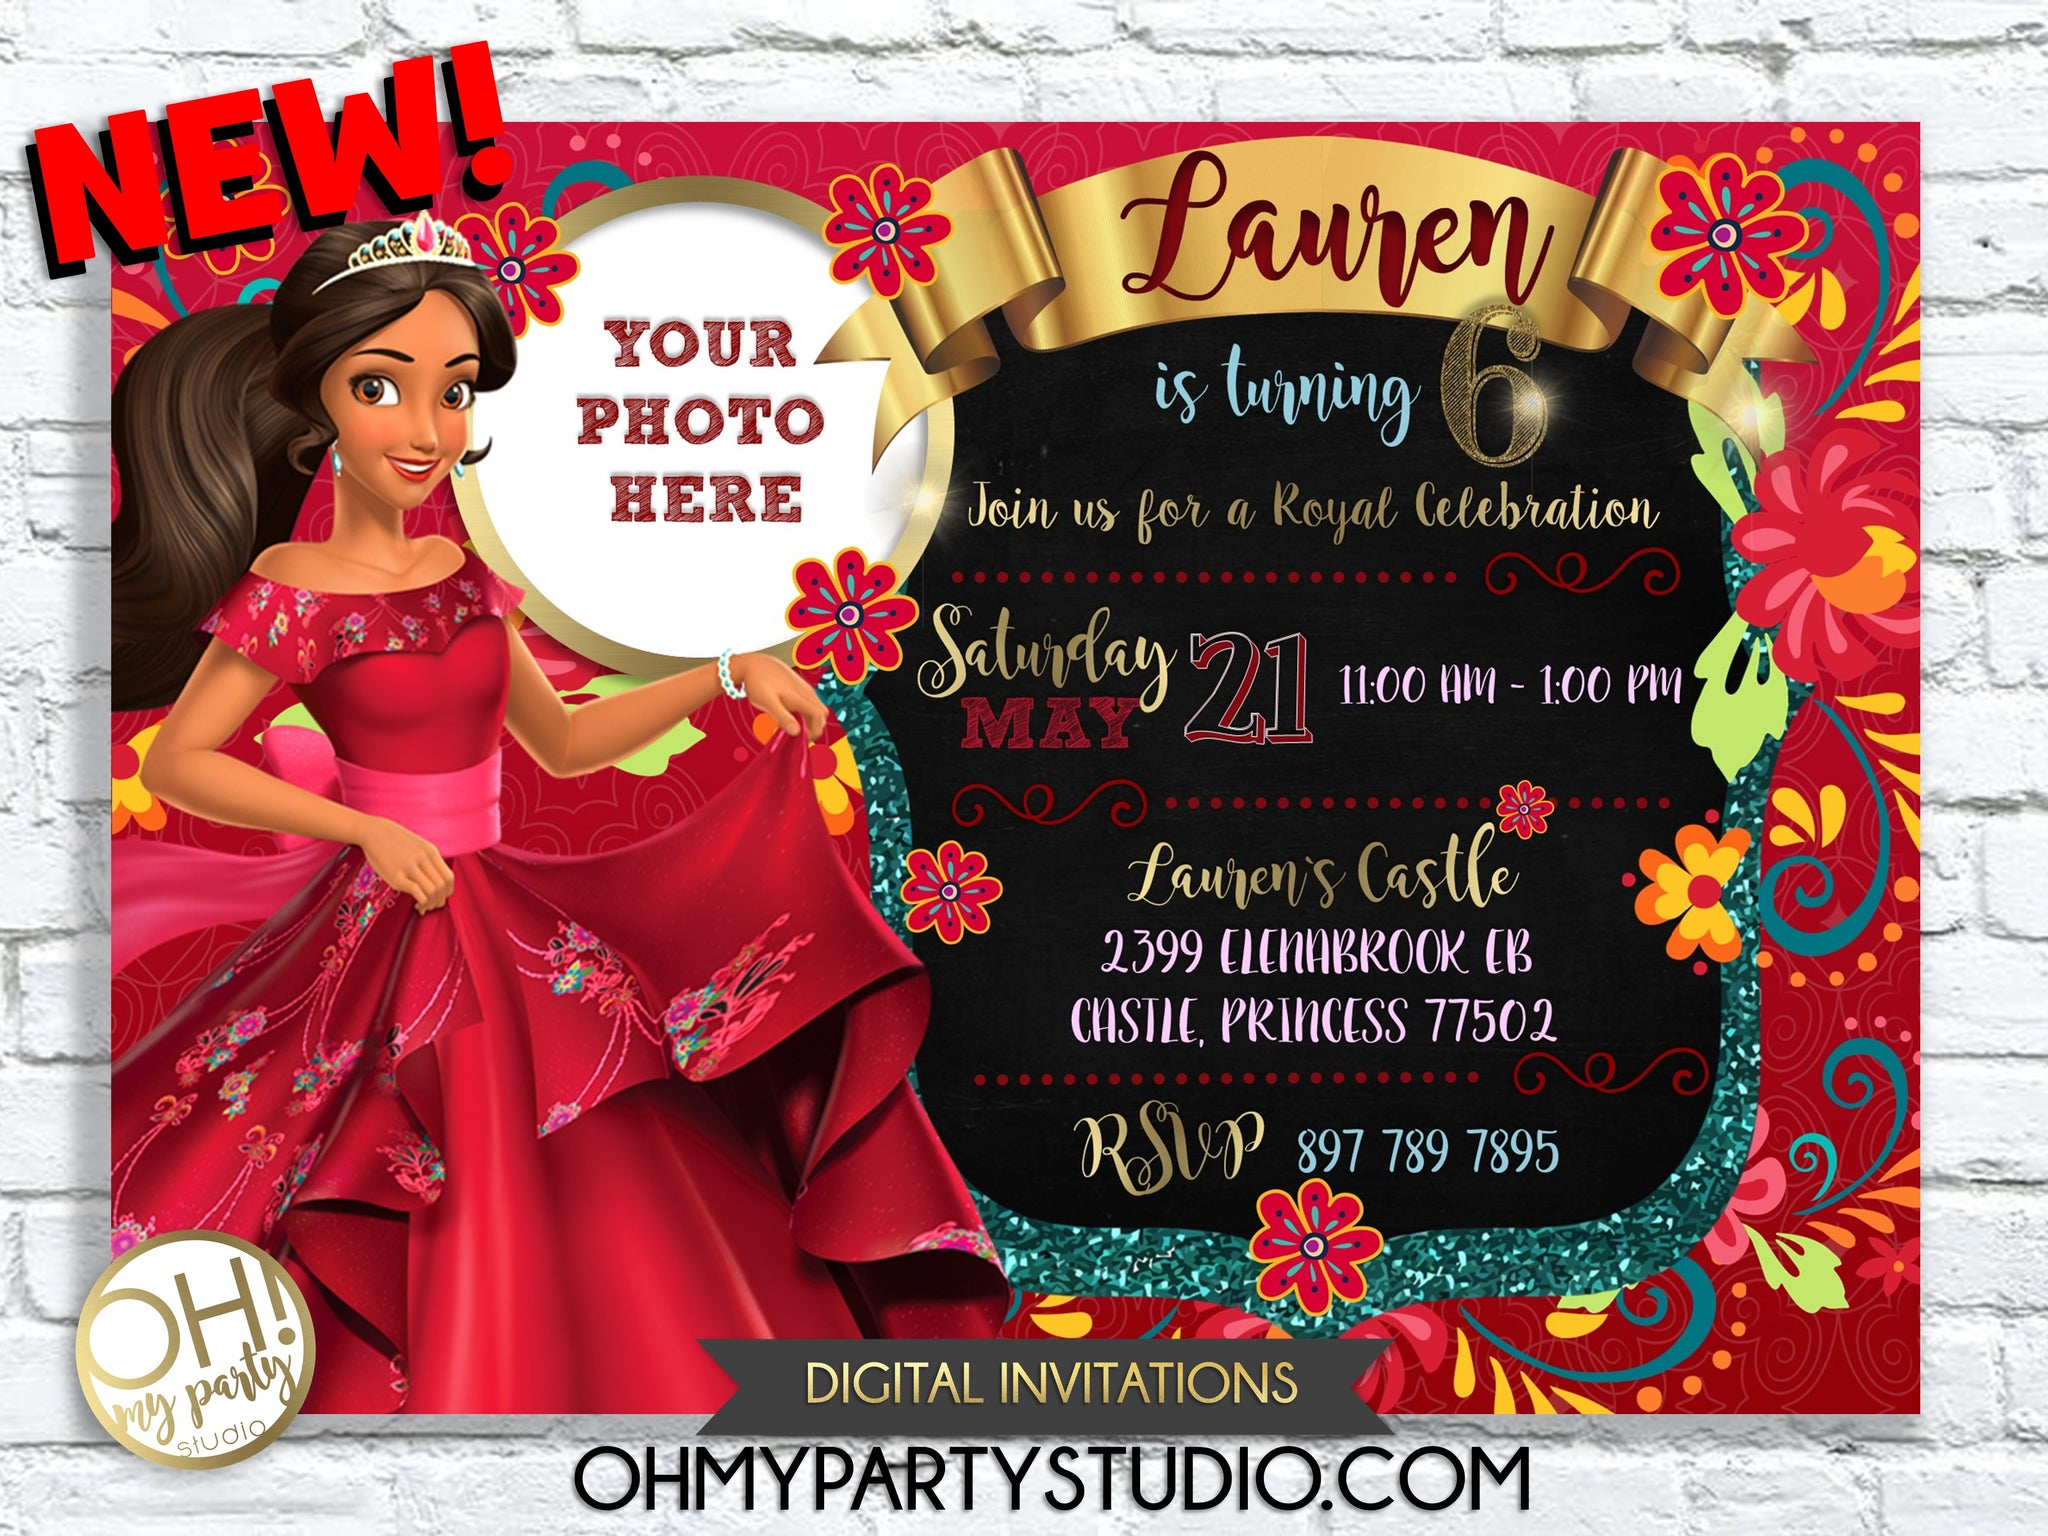 ELENA OF AVALOR BIRTHDAY PARTY INVITATION